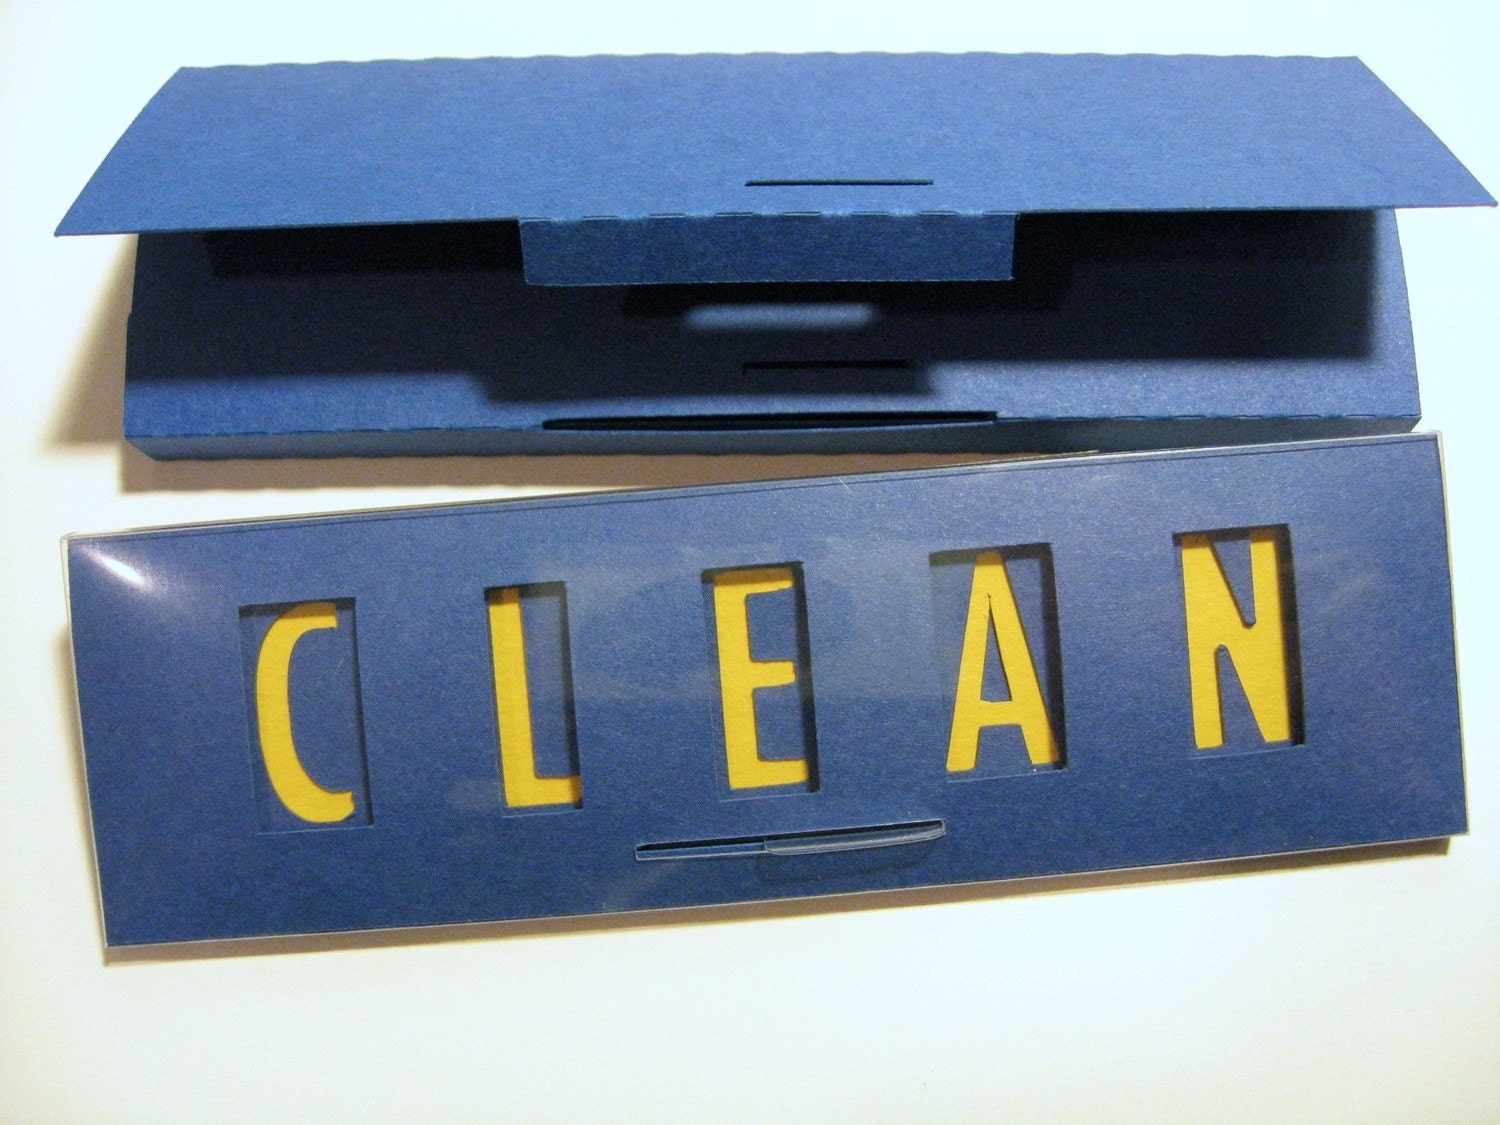 Quick Flick, Clean / Dirty Dishwasher Sign in BLUE